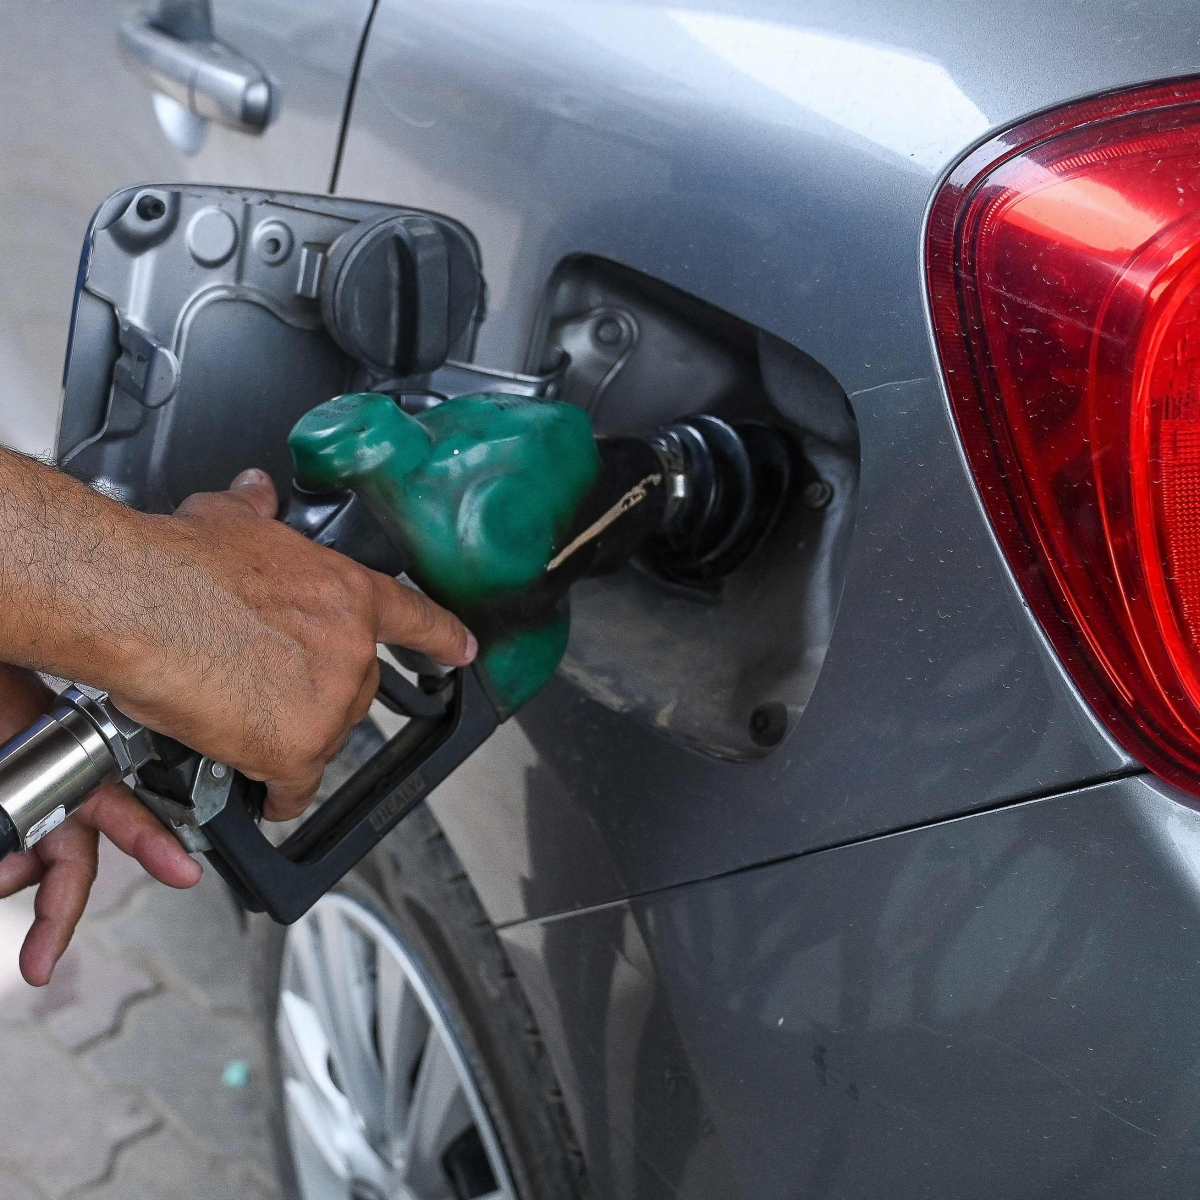 Fuel prices hiked after a day's gap; petrol rate crosses Rs 103-mark in Mumbai